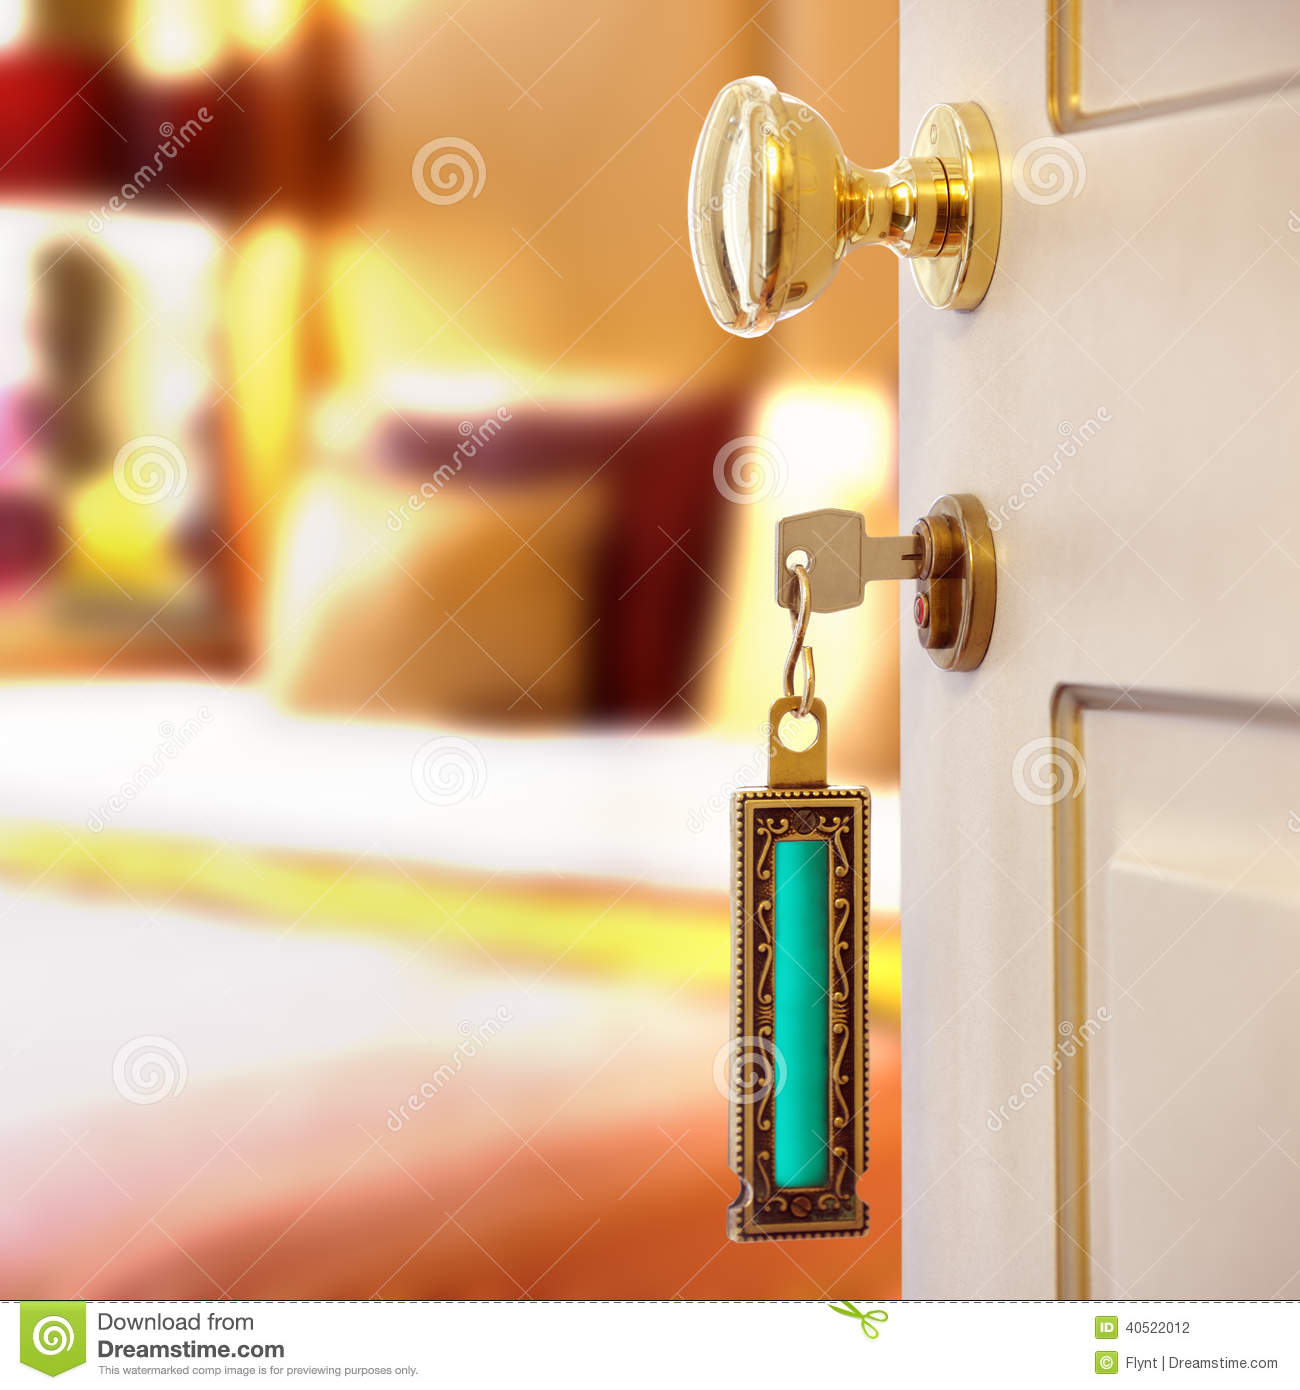 How To Open A Bedroom Door Lock: Hotel Room Stock Photo. Image Of Indoor, Lock, Colour